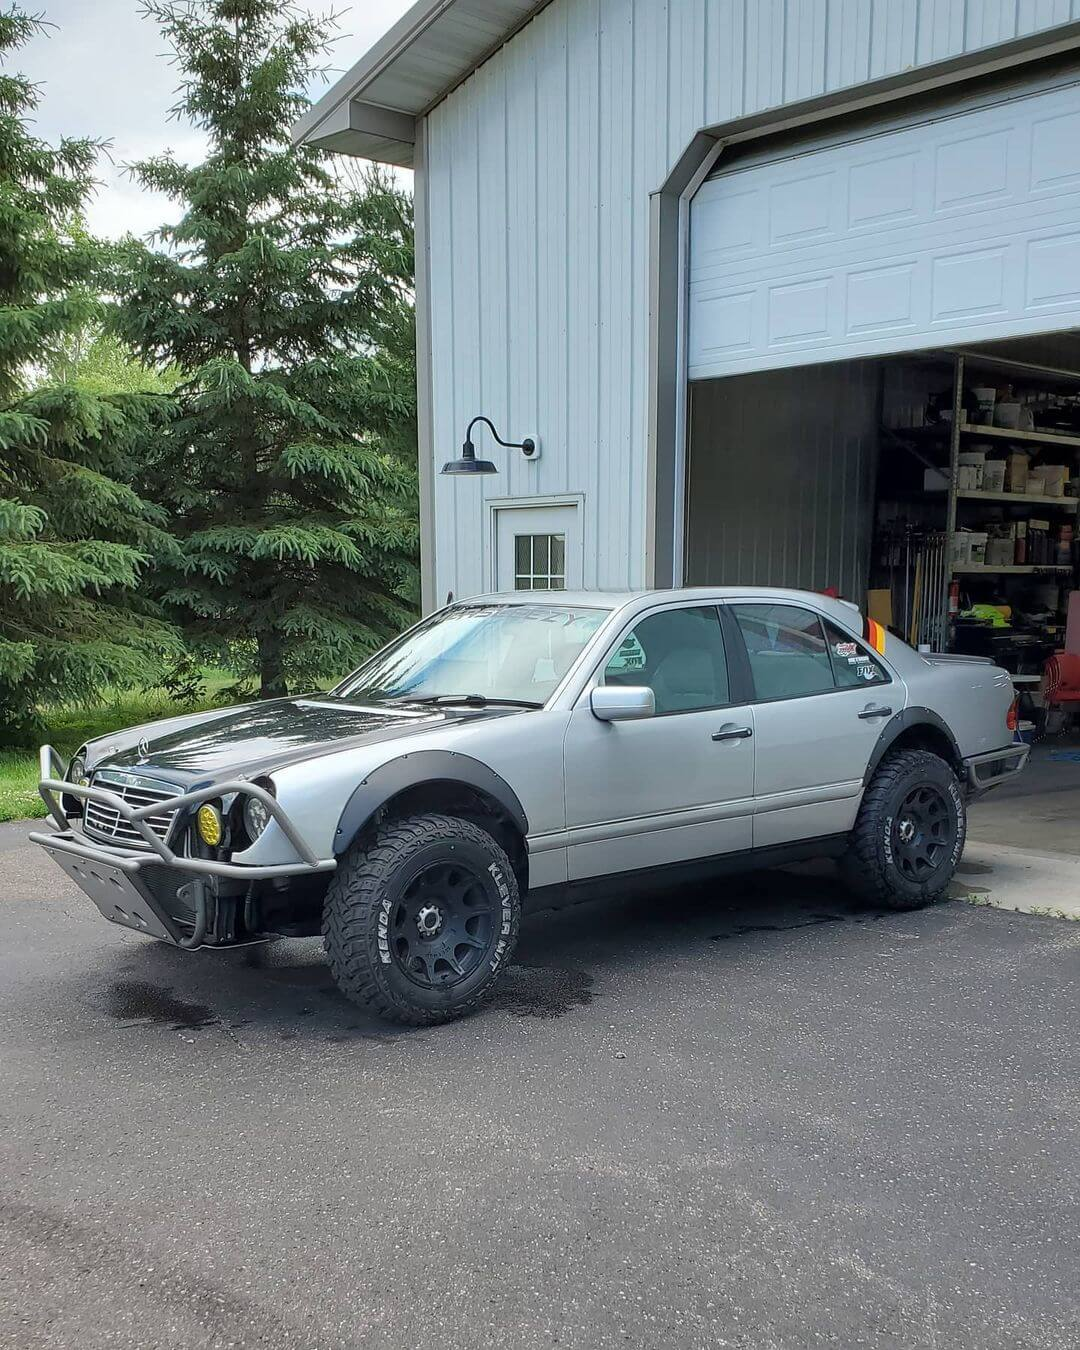 """Lifted Mercedes E-Class on 31"""" tires"""